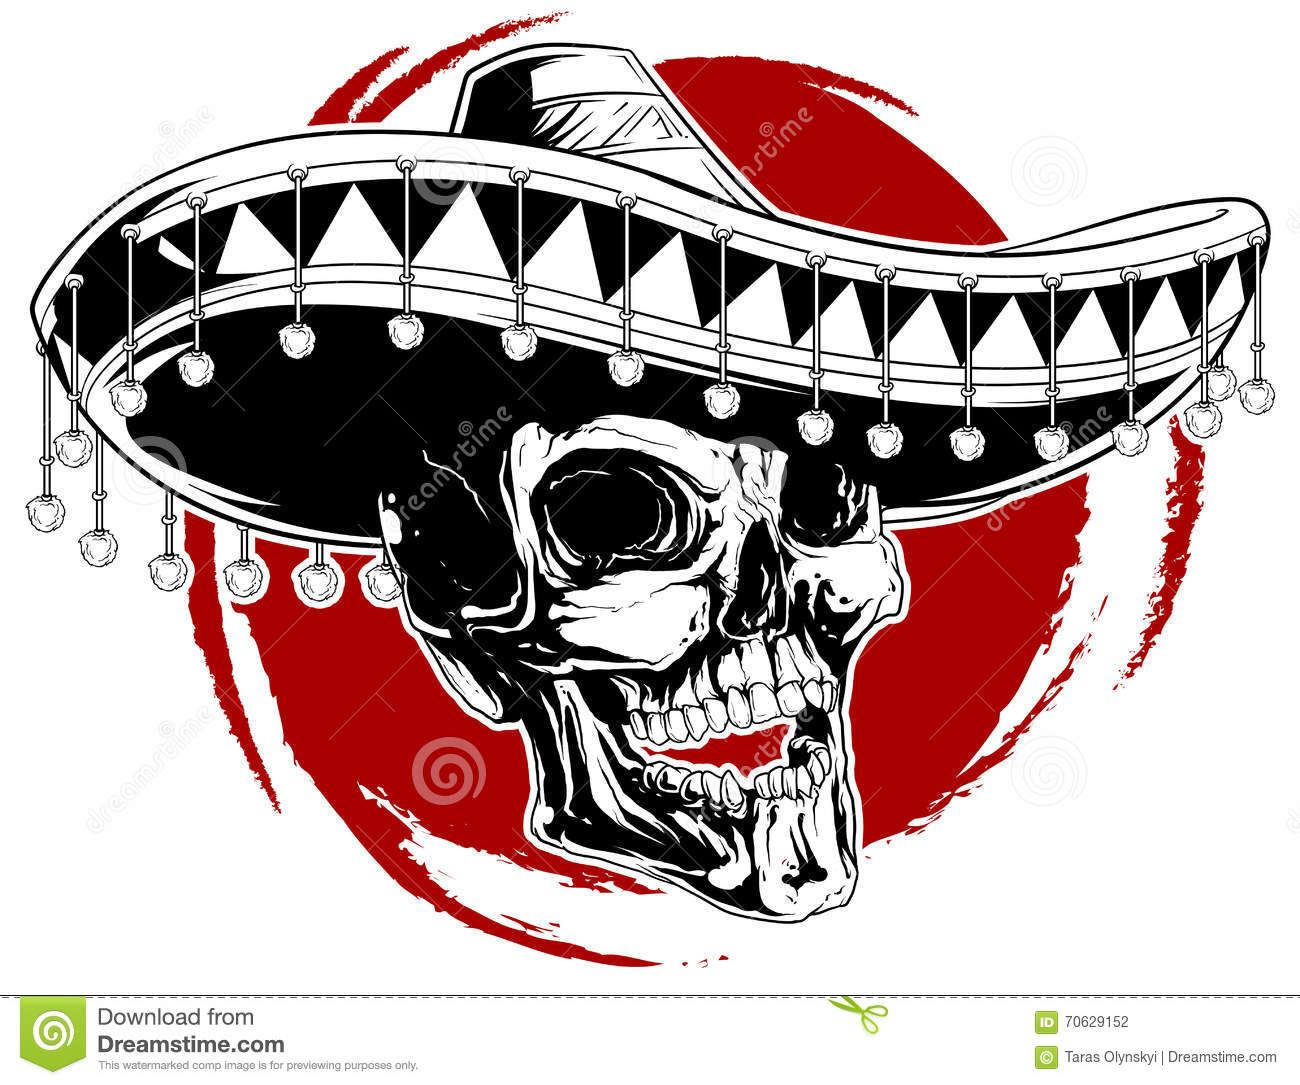 741e216aa47f1 Mexican skull tattoo stock vector. Illustration of sign - 70629152